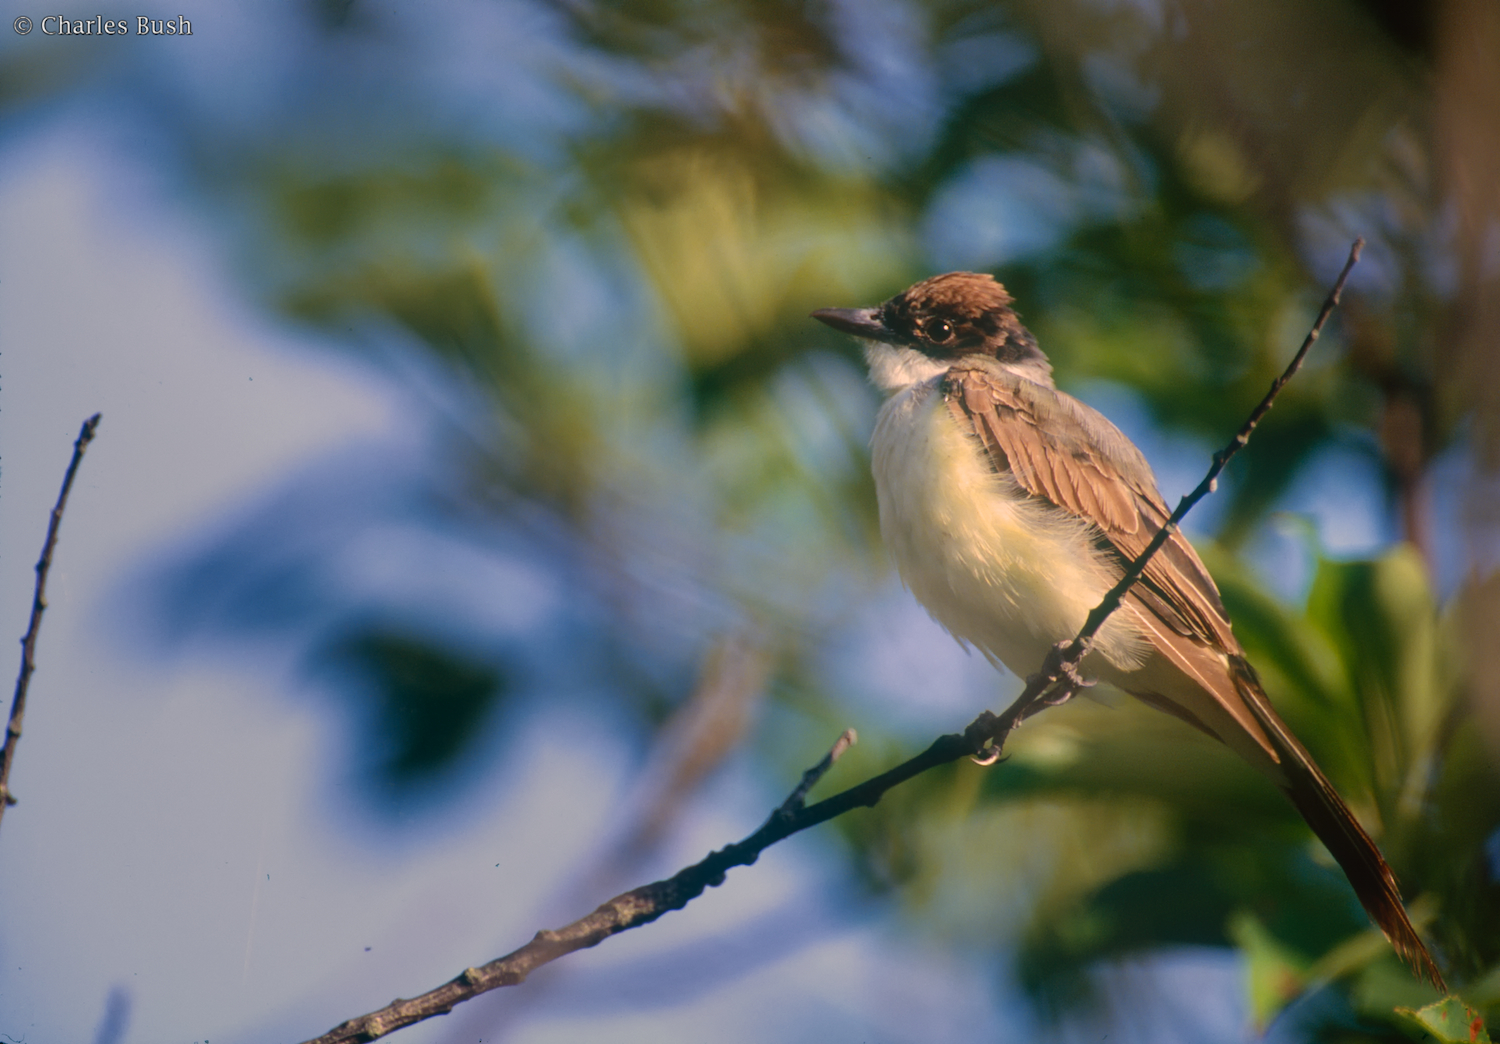 Juvenile Forked-Tailed Flycatcher  Nikon F5 600mm f4 AFS lens